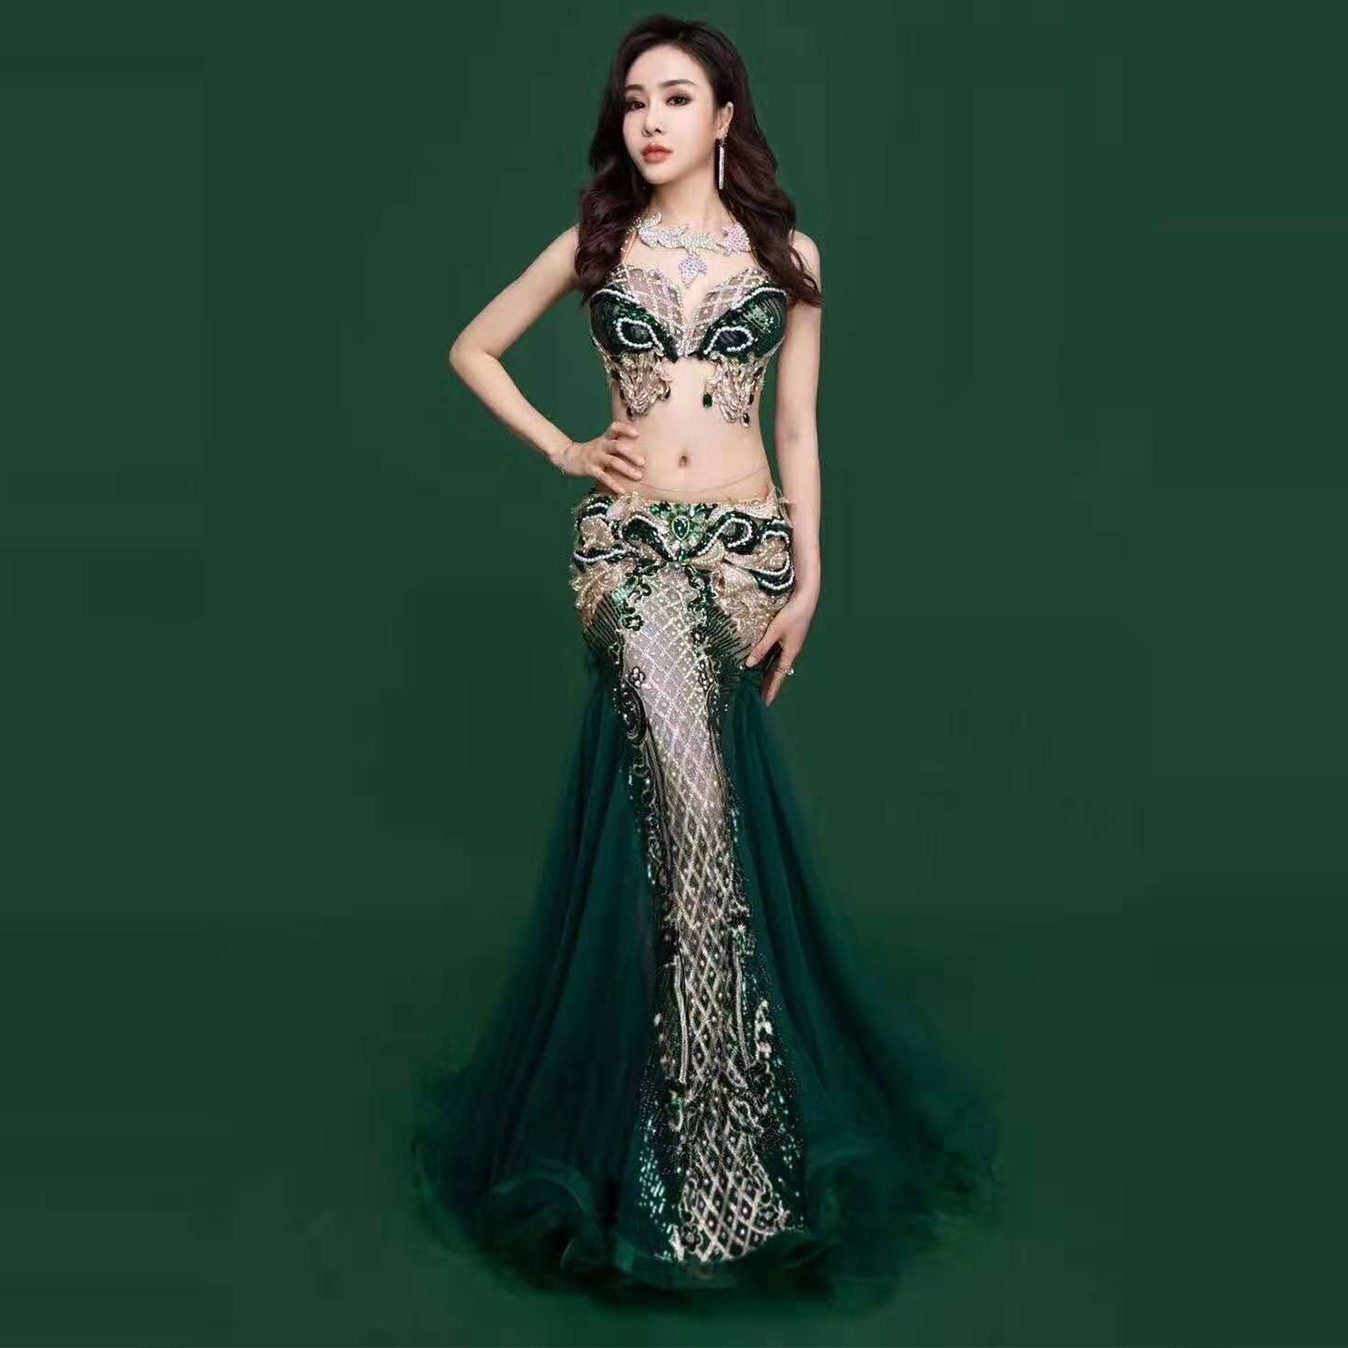 Women Belly Dance Costume Set Professional Custom Long Skirt Mesh Suit Oriental Dancing Competition Bellydance Practice Outfit